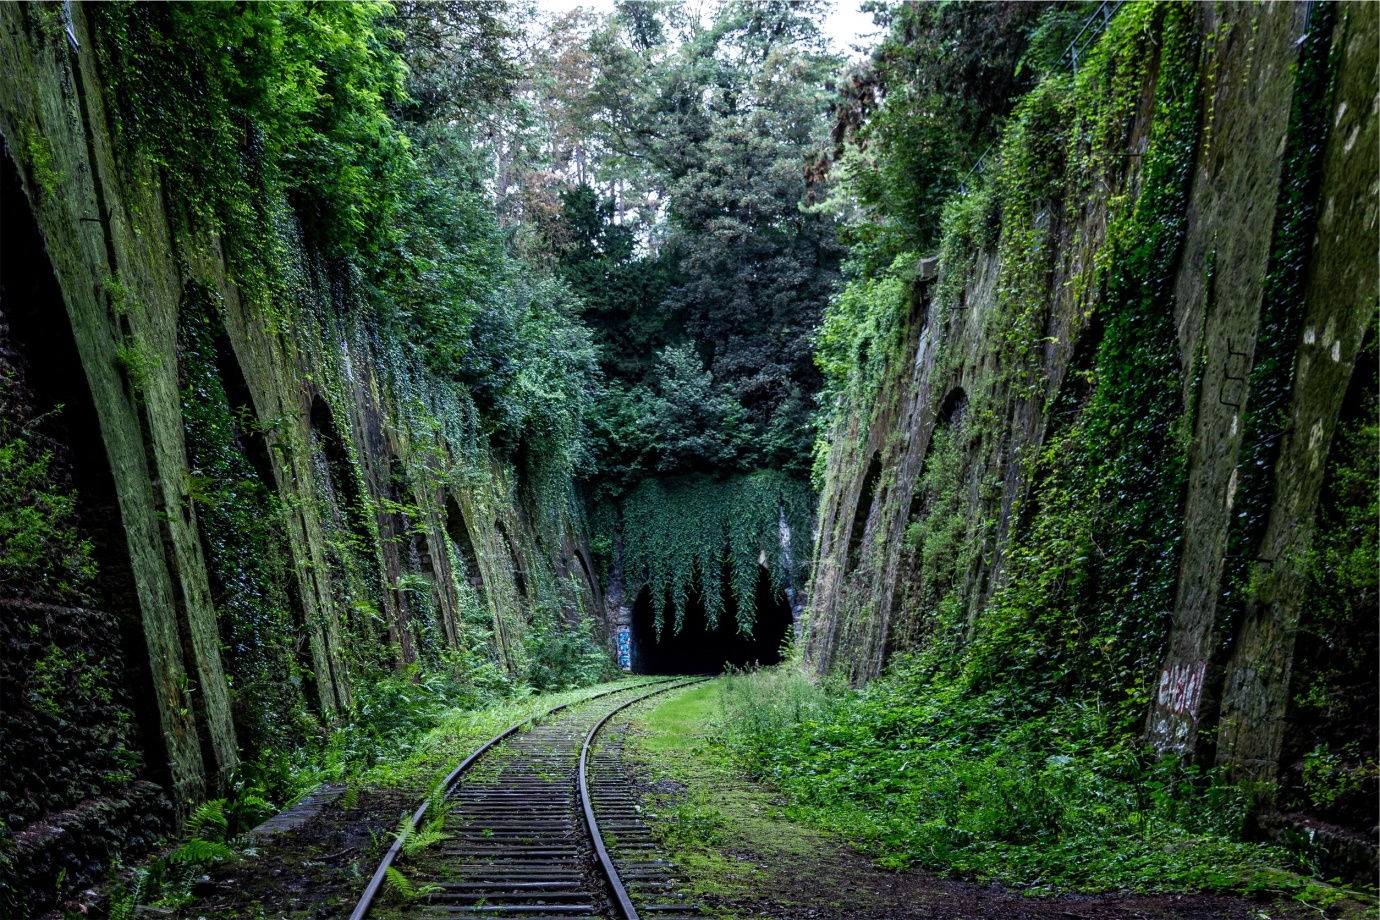 Train tracks through nature